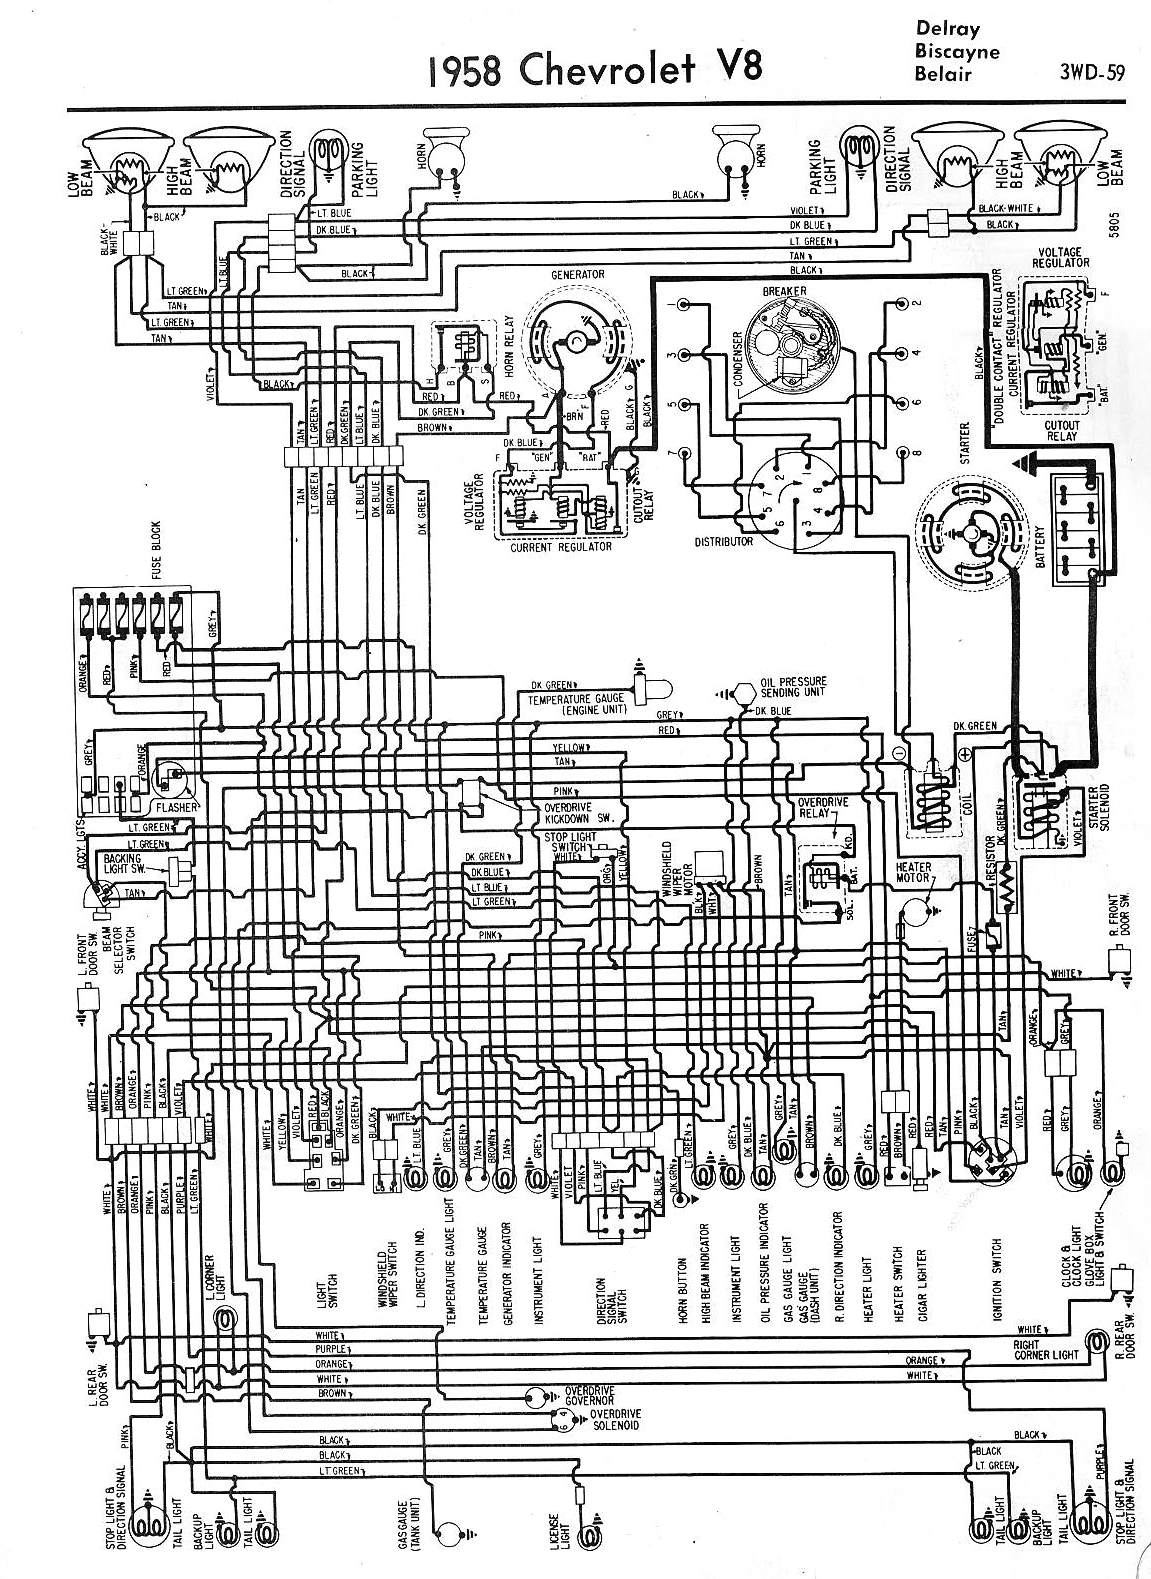 Panhead Wiring Diagram - Wiring Diagram Data Oreo - Harley Davidson Voltage Regulator Wiring Diagram